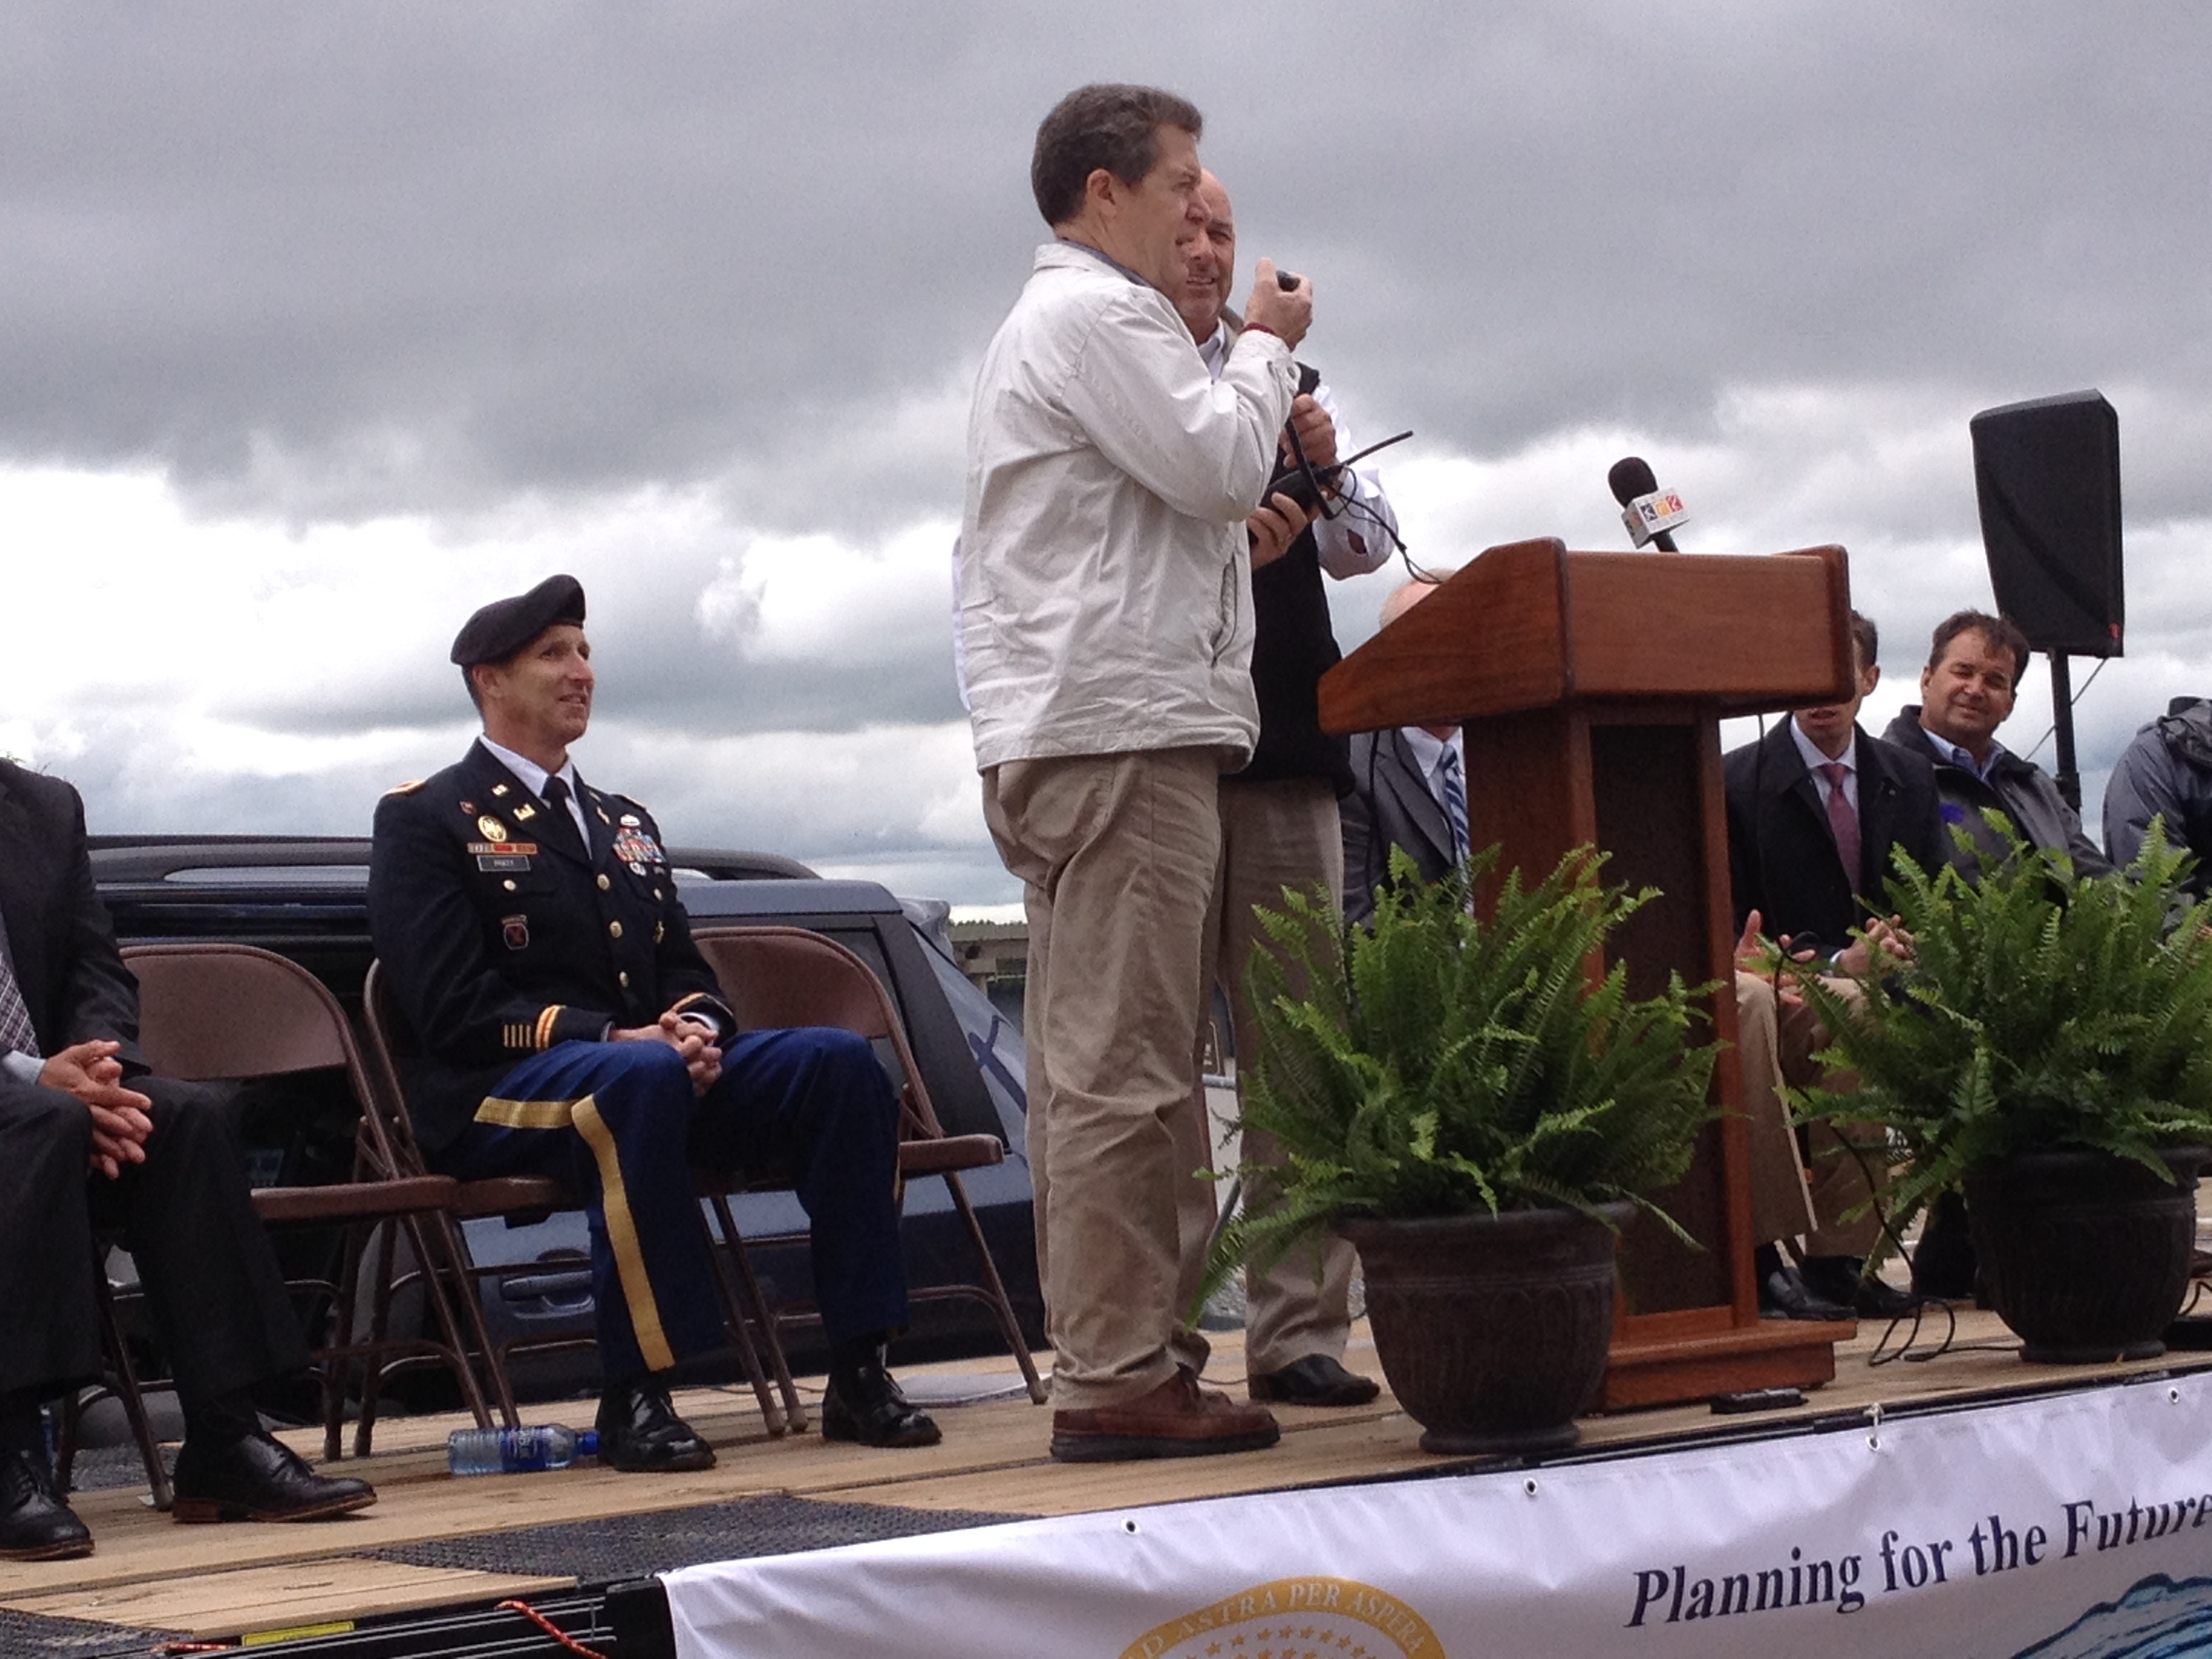 Kansas Governor Sam Brownback gives the command to begin dredging the lake. (Photo by Bryan Thompson)